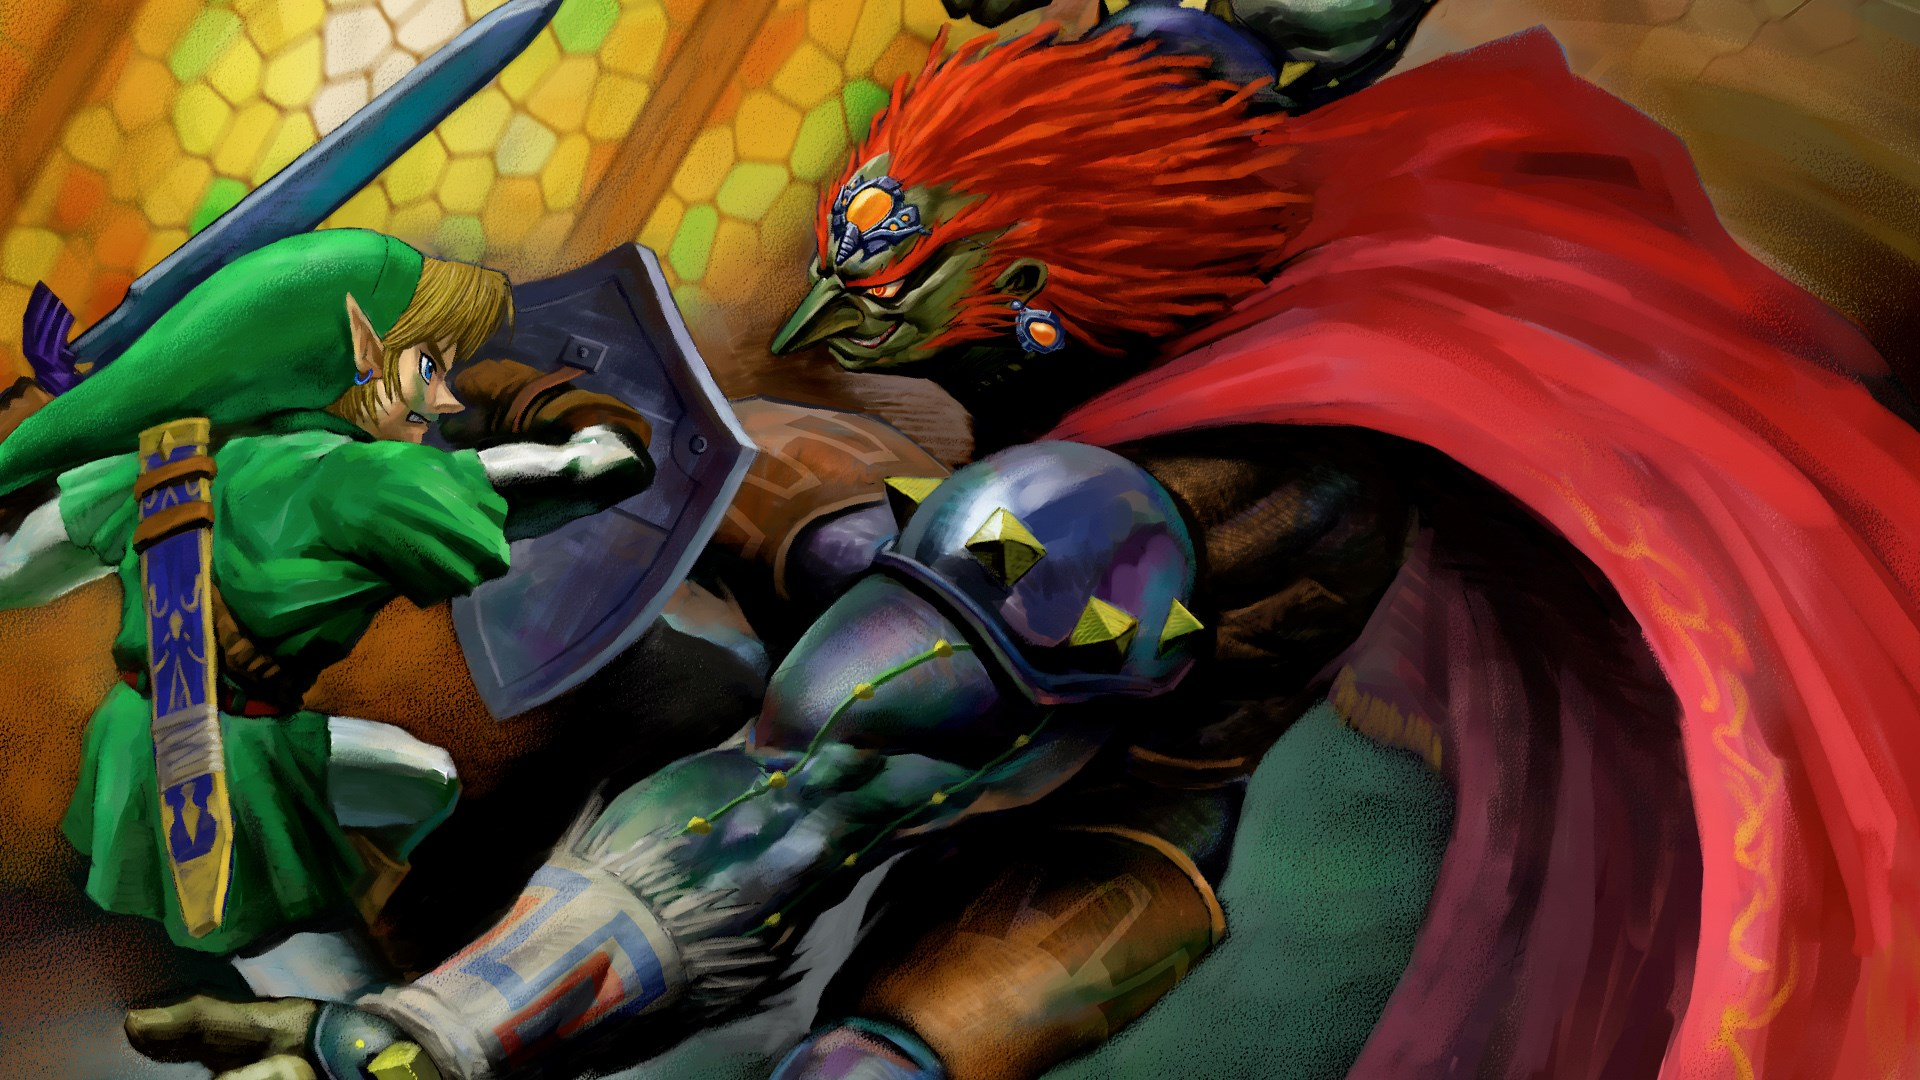 Ocarina of Time is Prime For an HD Remake